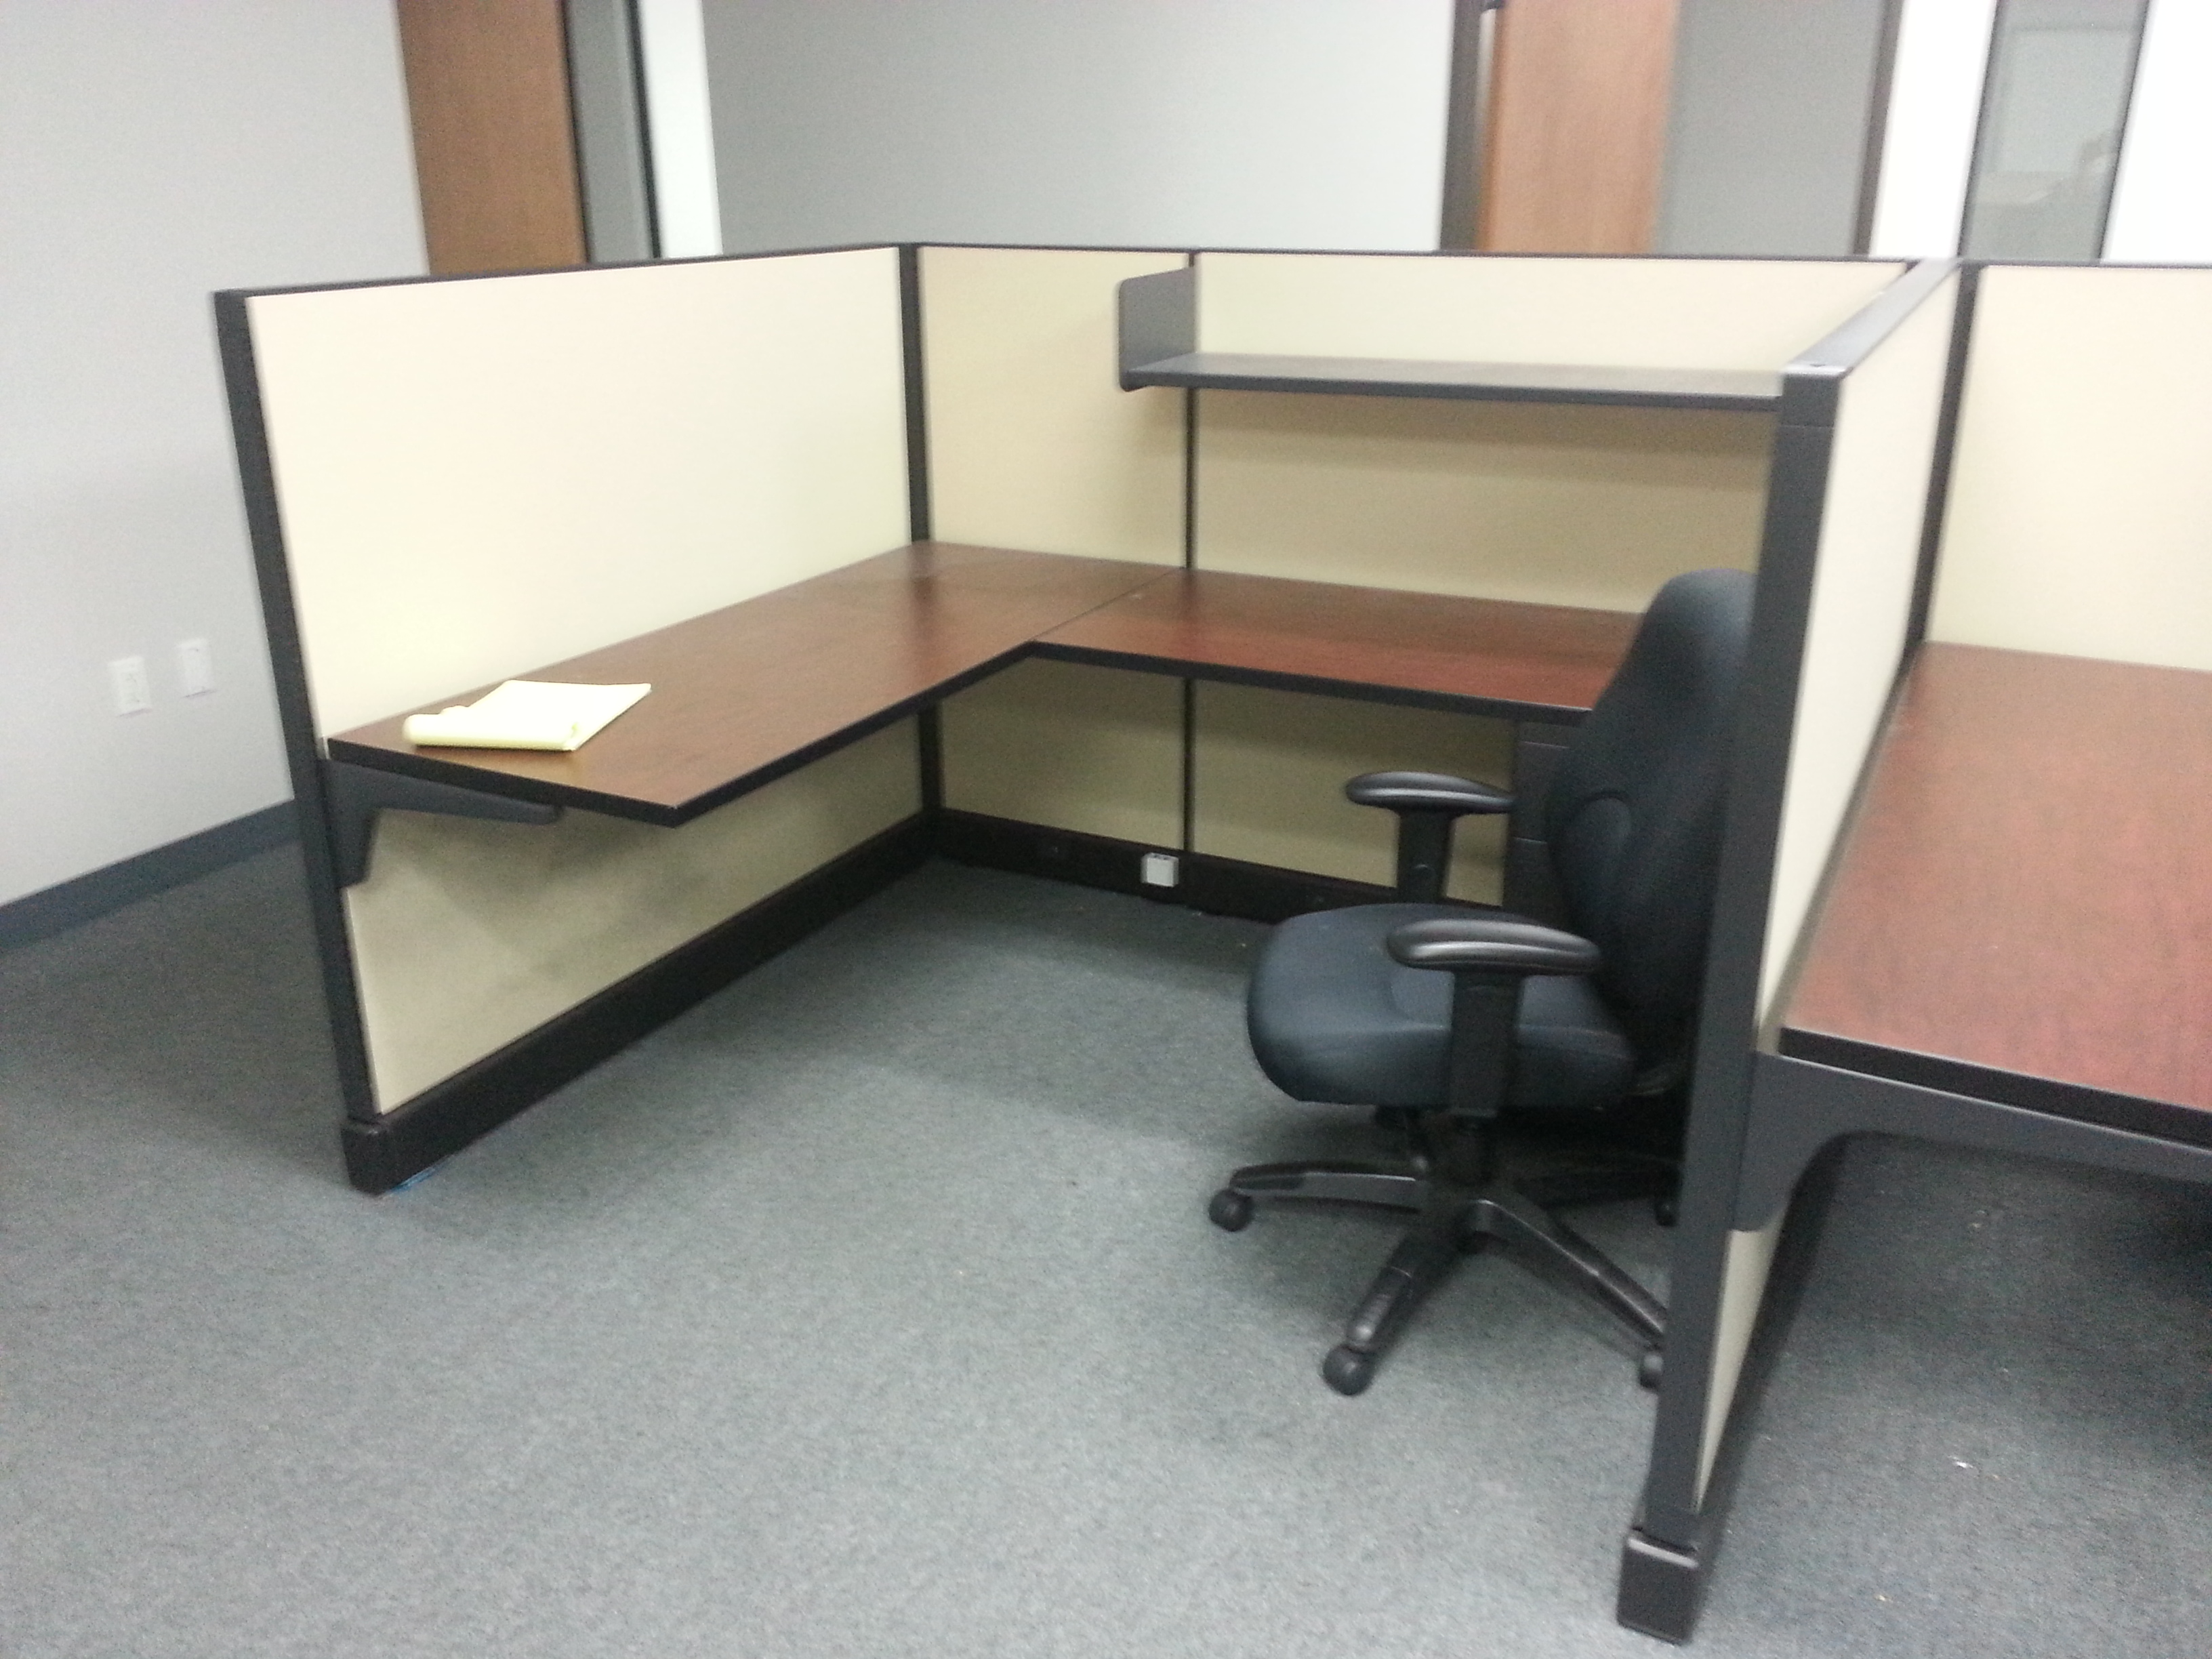 Herman Miller Action fice II Cubicles MBK fice